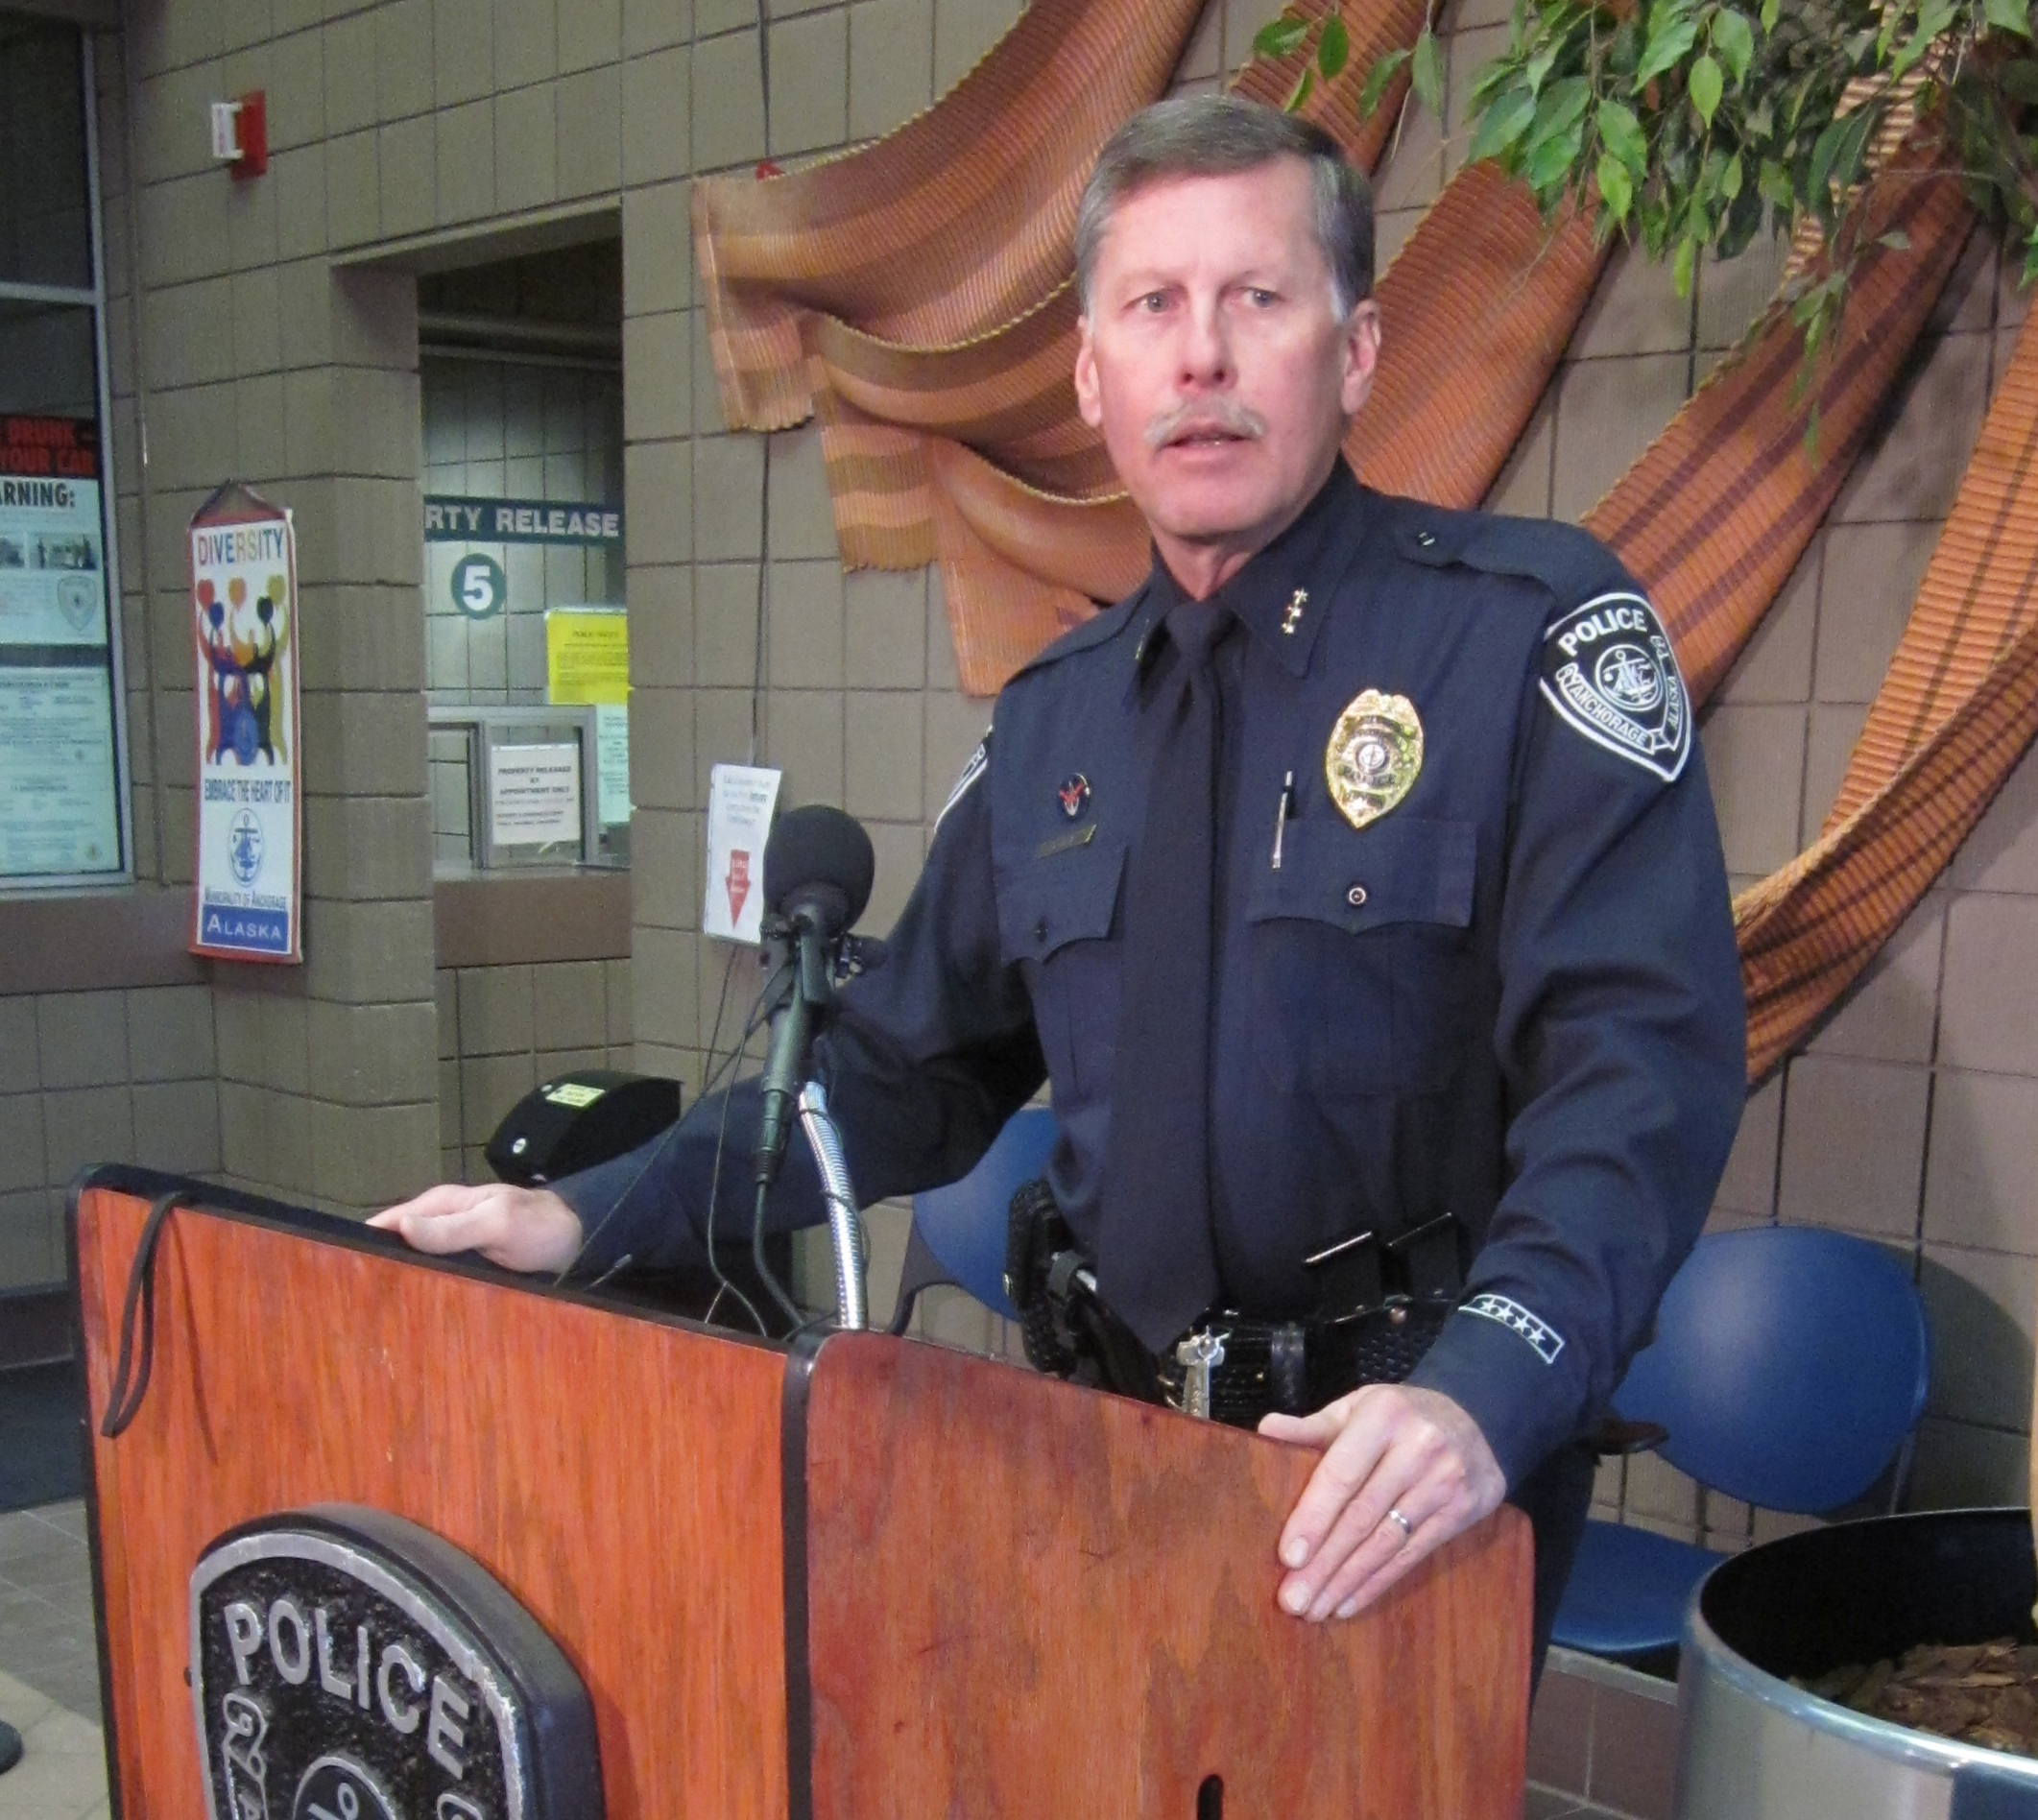 Anchorage Police Chief Mark Mew press conference April 8, 2013.